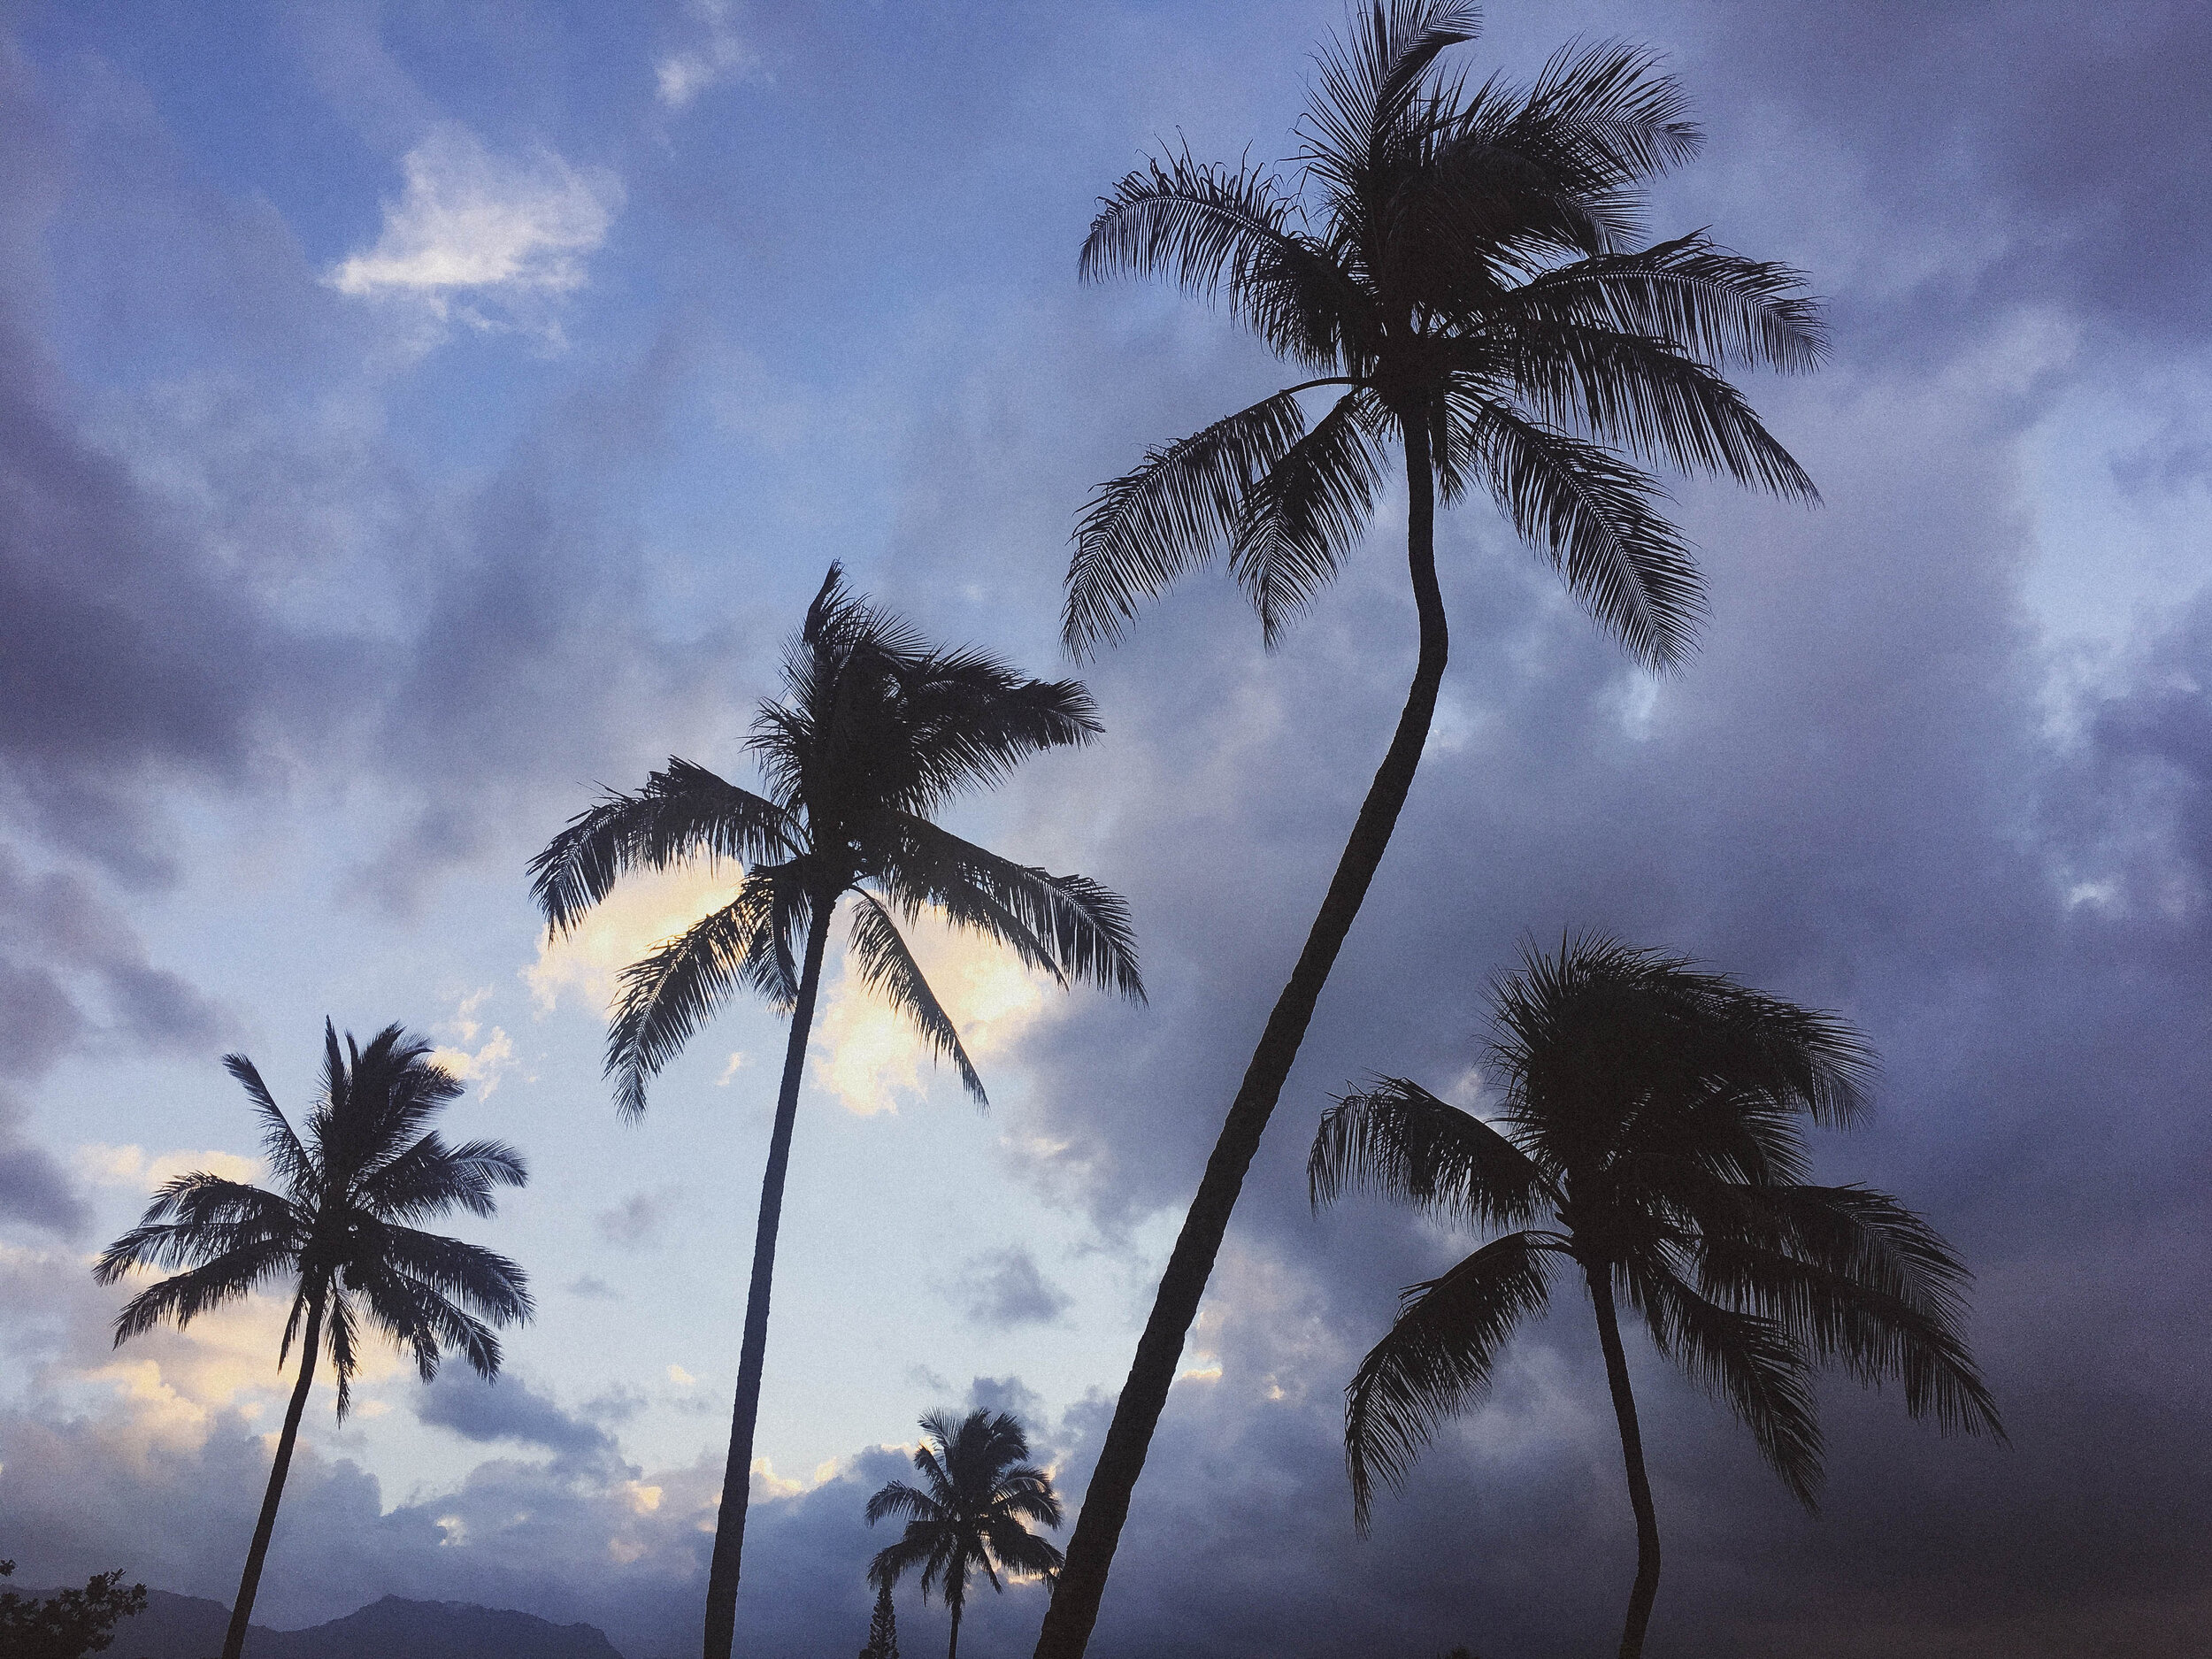 Sunset and palm trees in Kauai